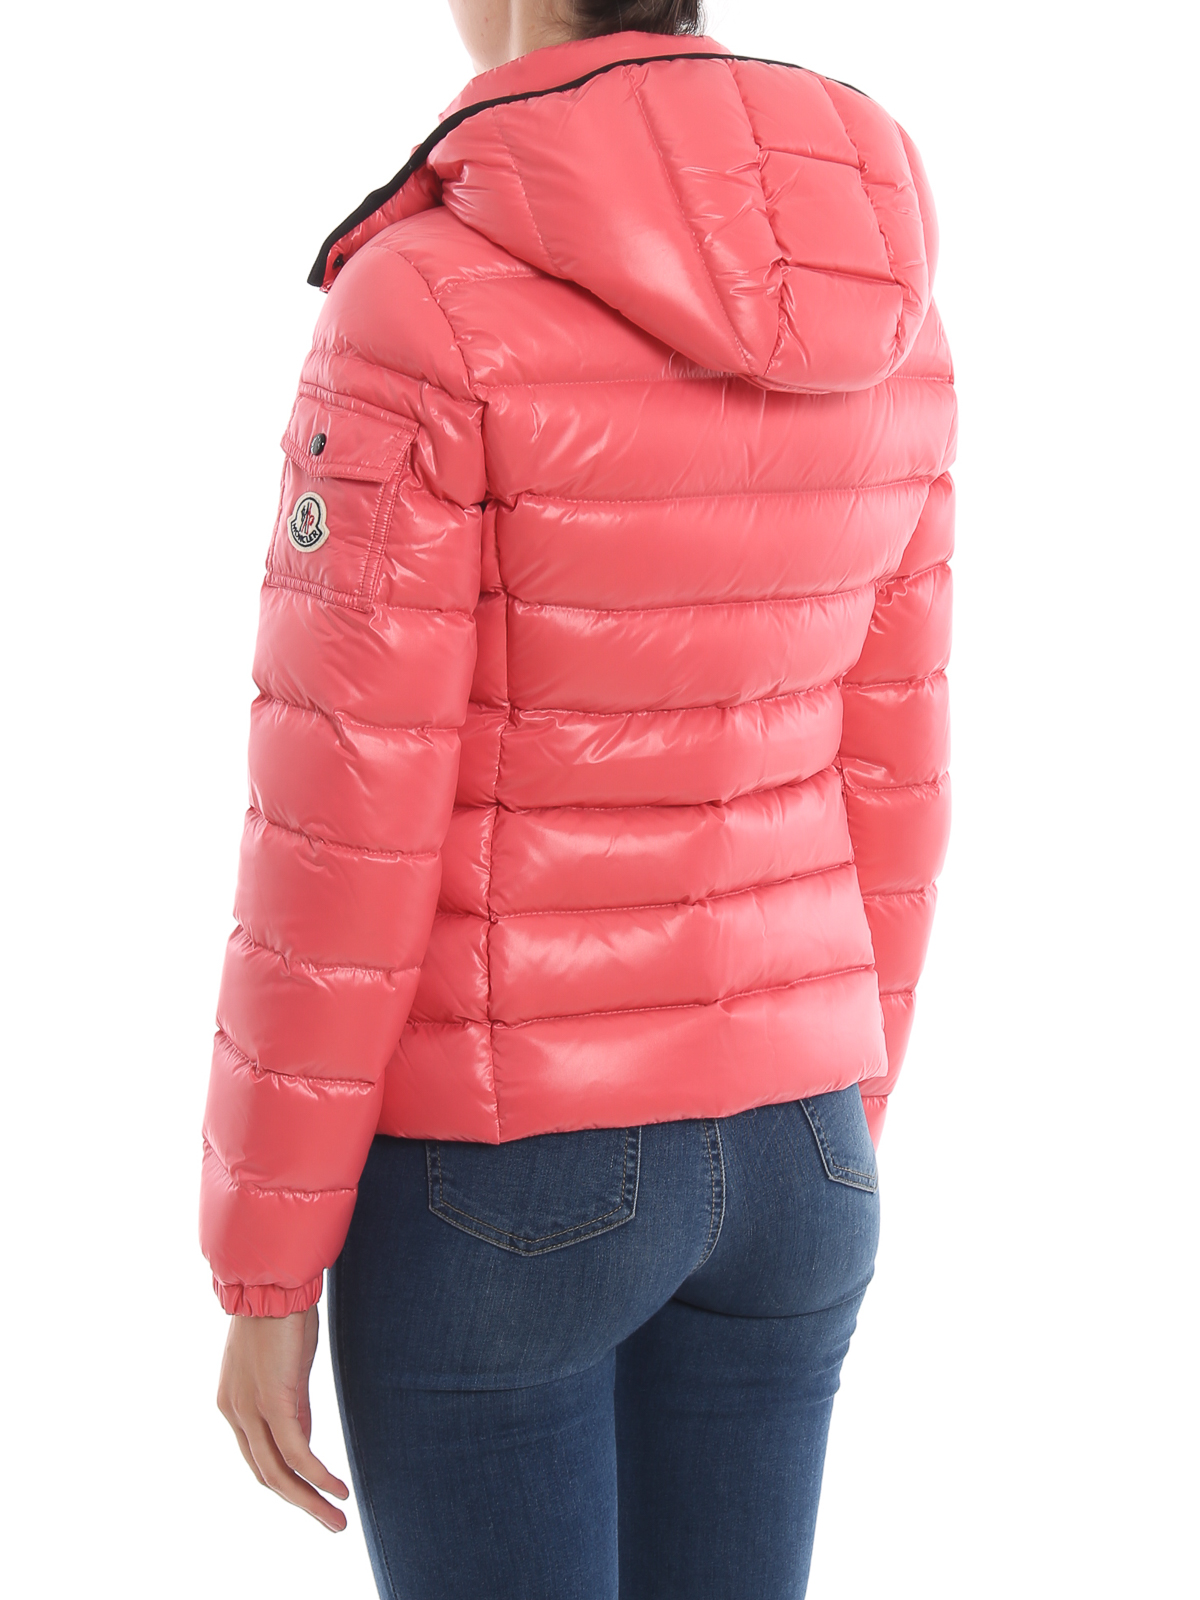 Alla Moda Moncler Bady Puffer Giacca Online :